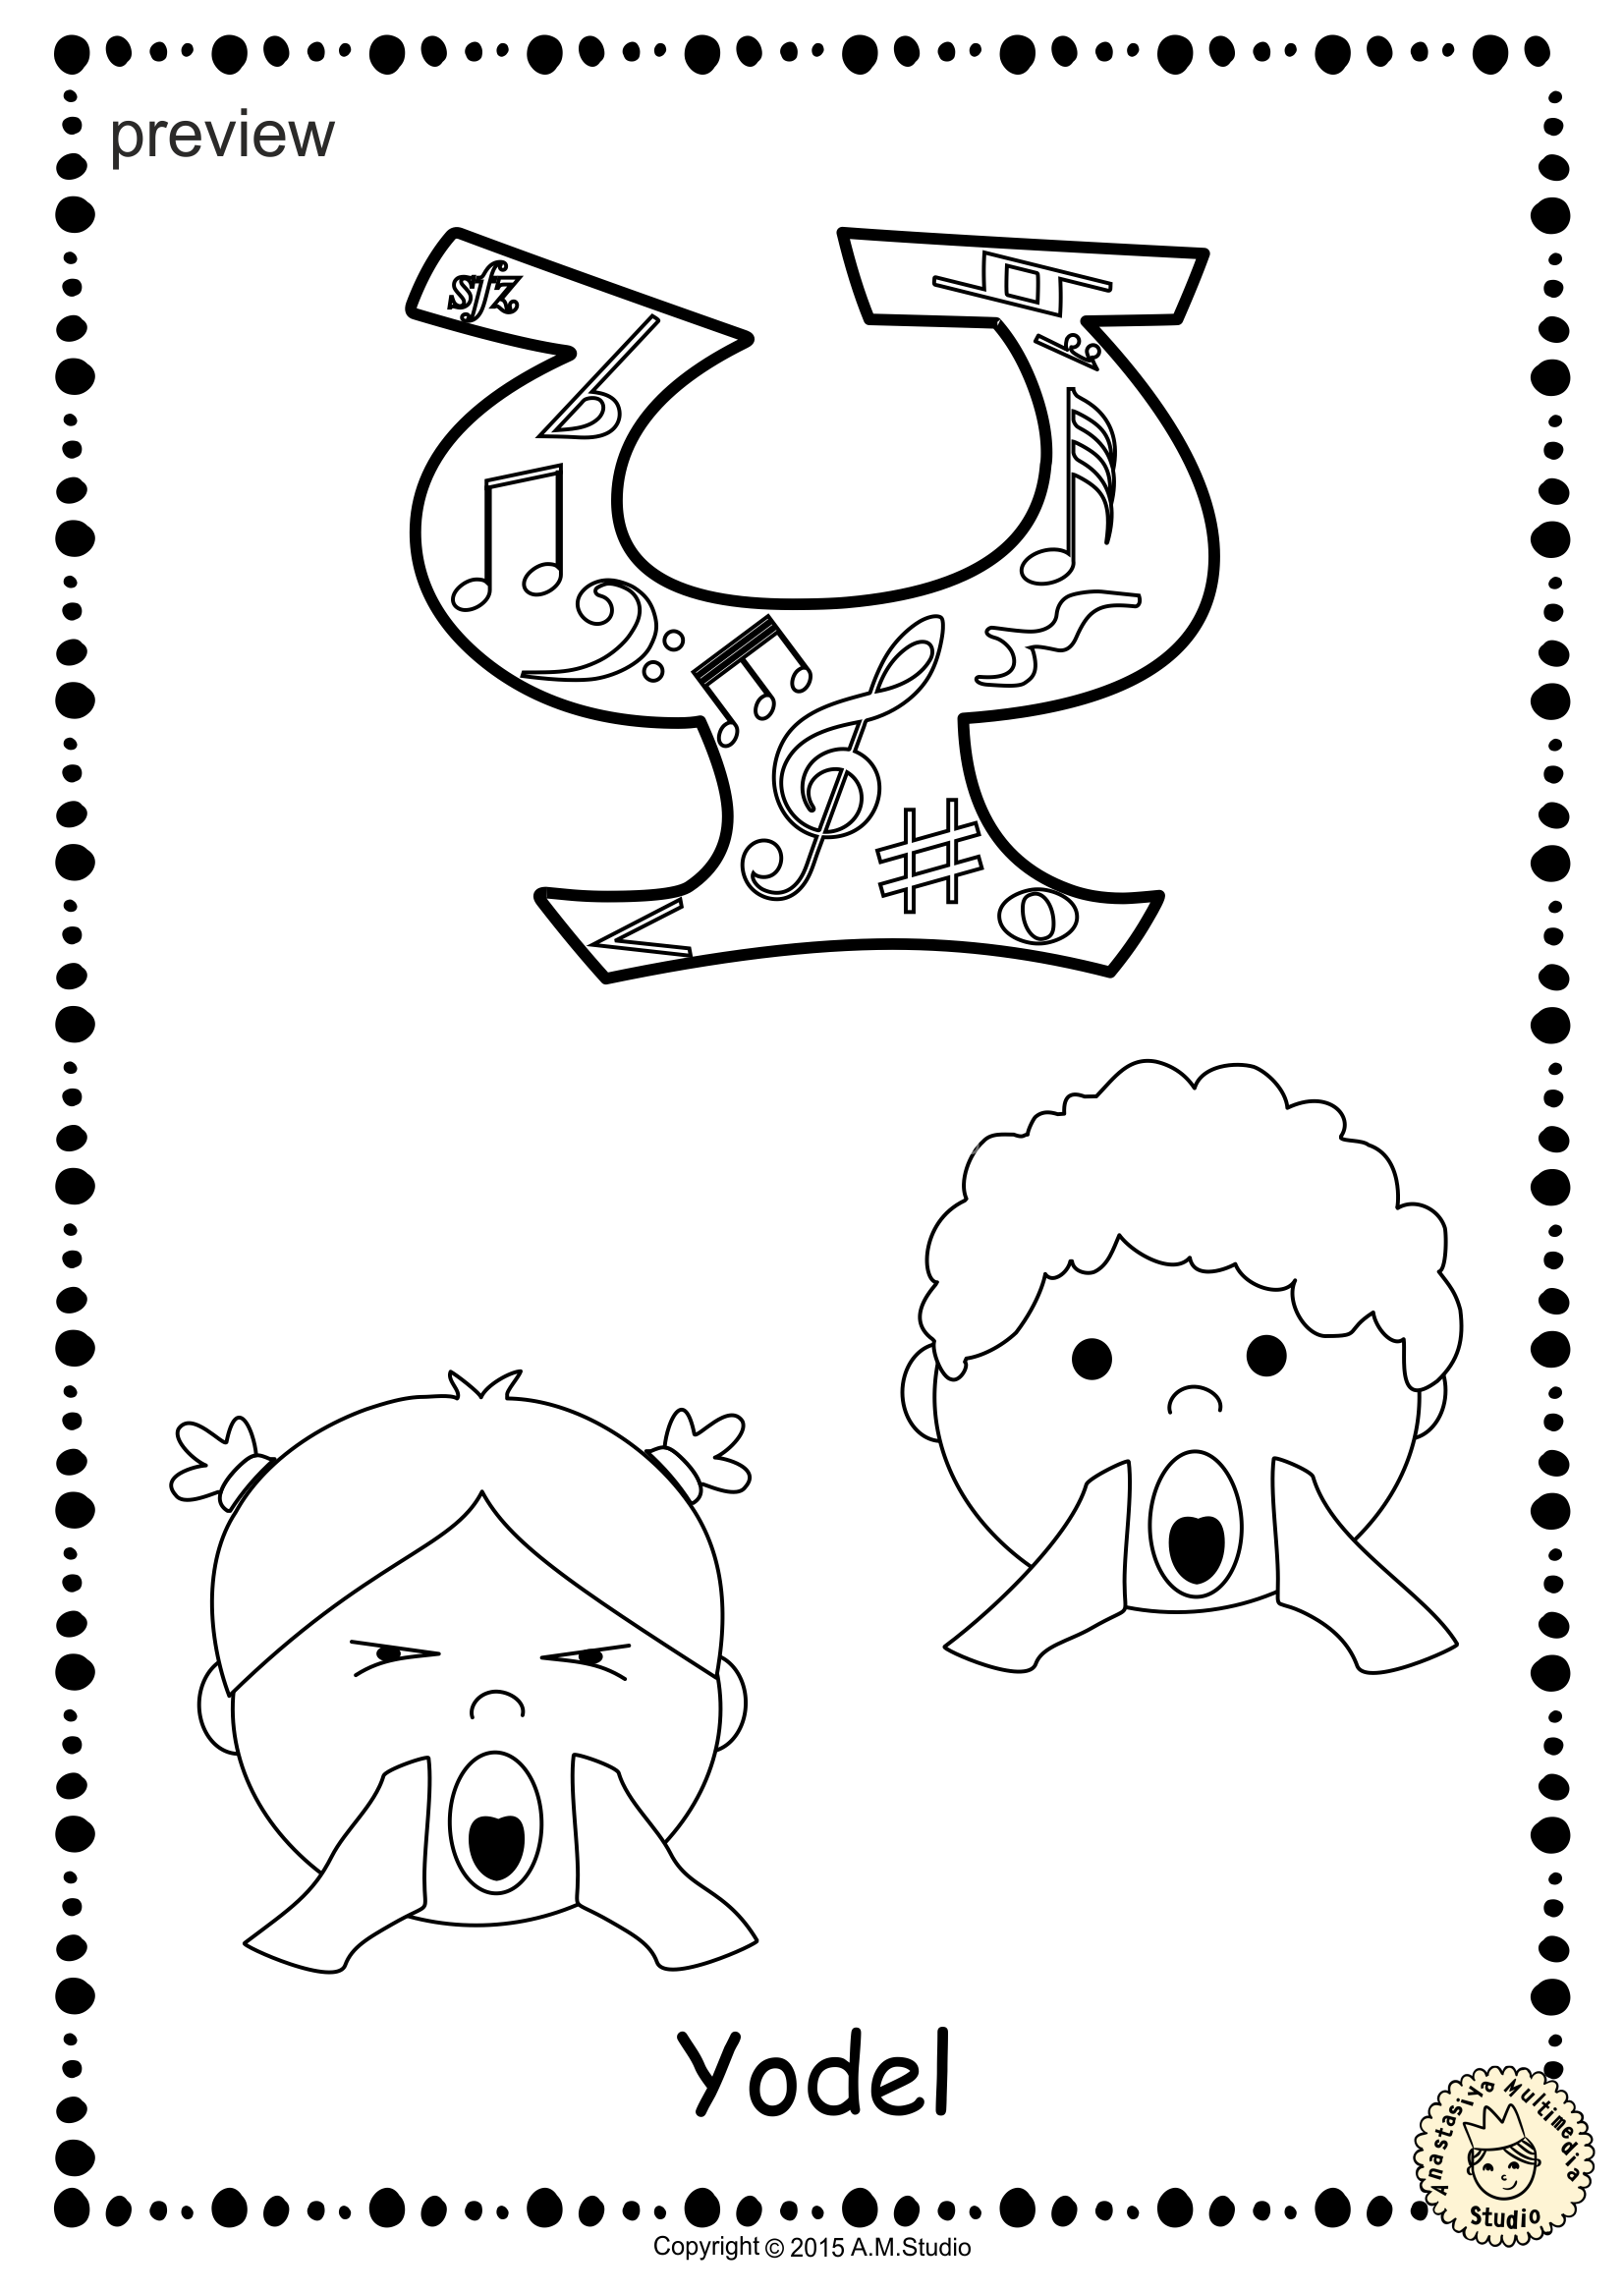 music note coloring pages pdf music alphabet coloring pages anastasiya multimedia studio music pages pdf coloring note